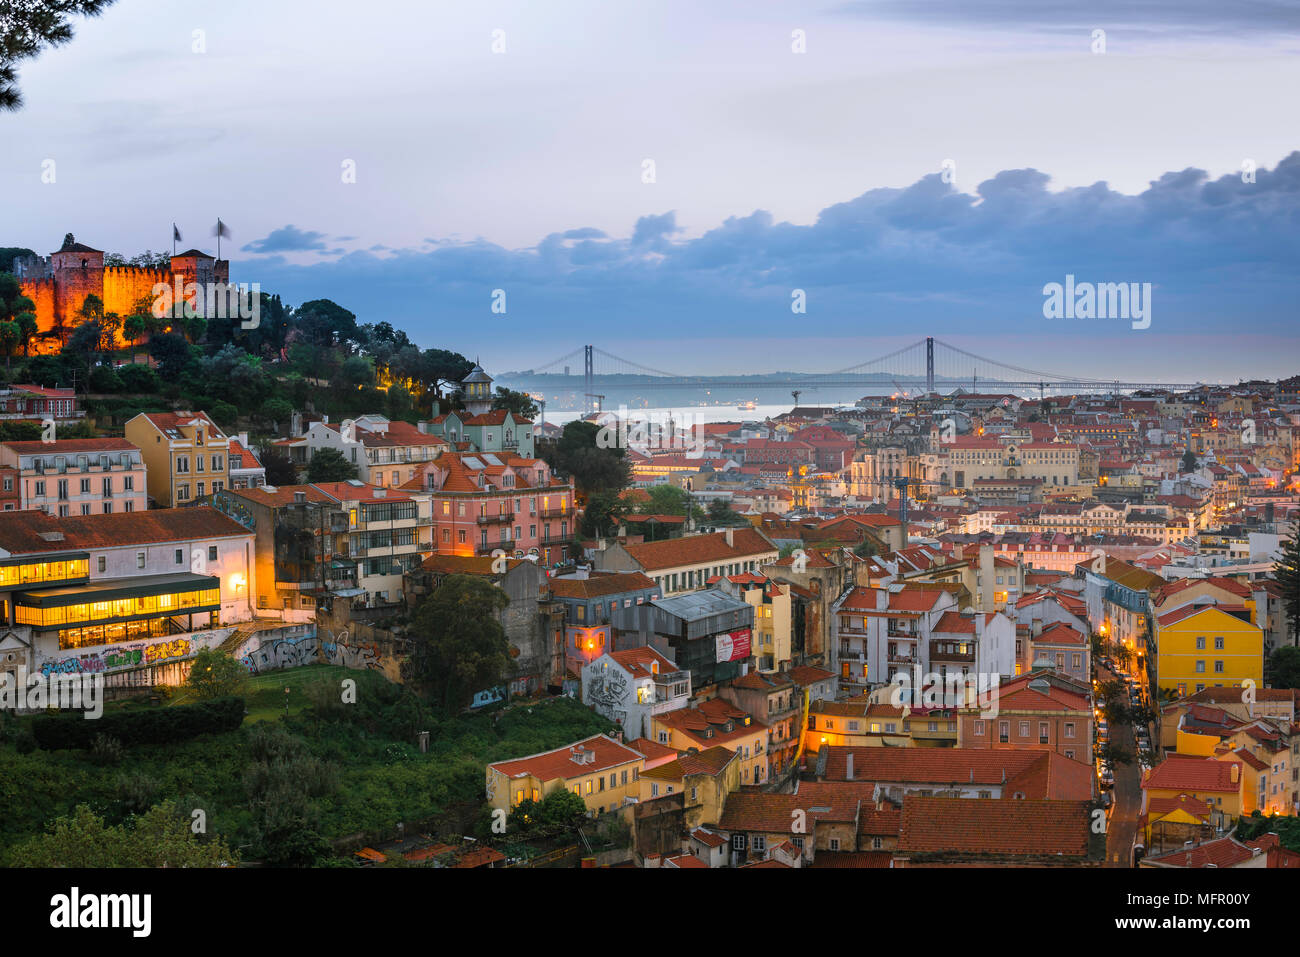 Lisbon cityscape, view across the rooftops of the Mouraria in the center of Lisbon towards the River Tagus and the Ponte 25 de Abril bridge, Portugal. Stock Photo